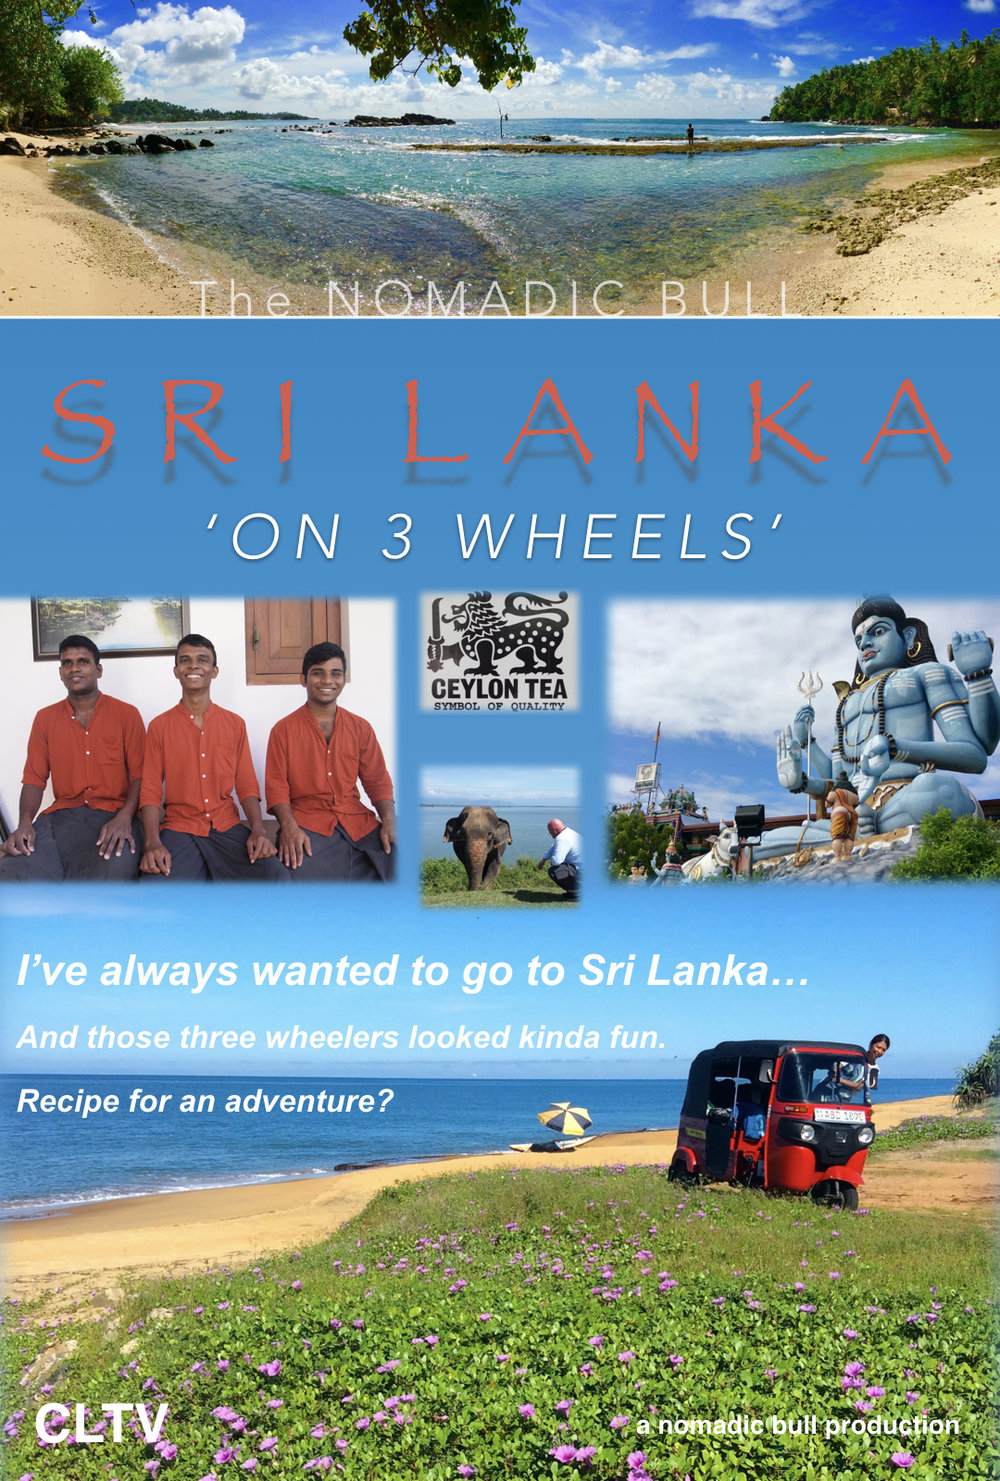 Sri Lanka - A 10 part series shot on location in Sri Lanka is also coming soon